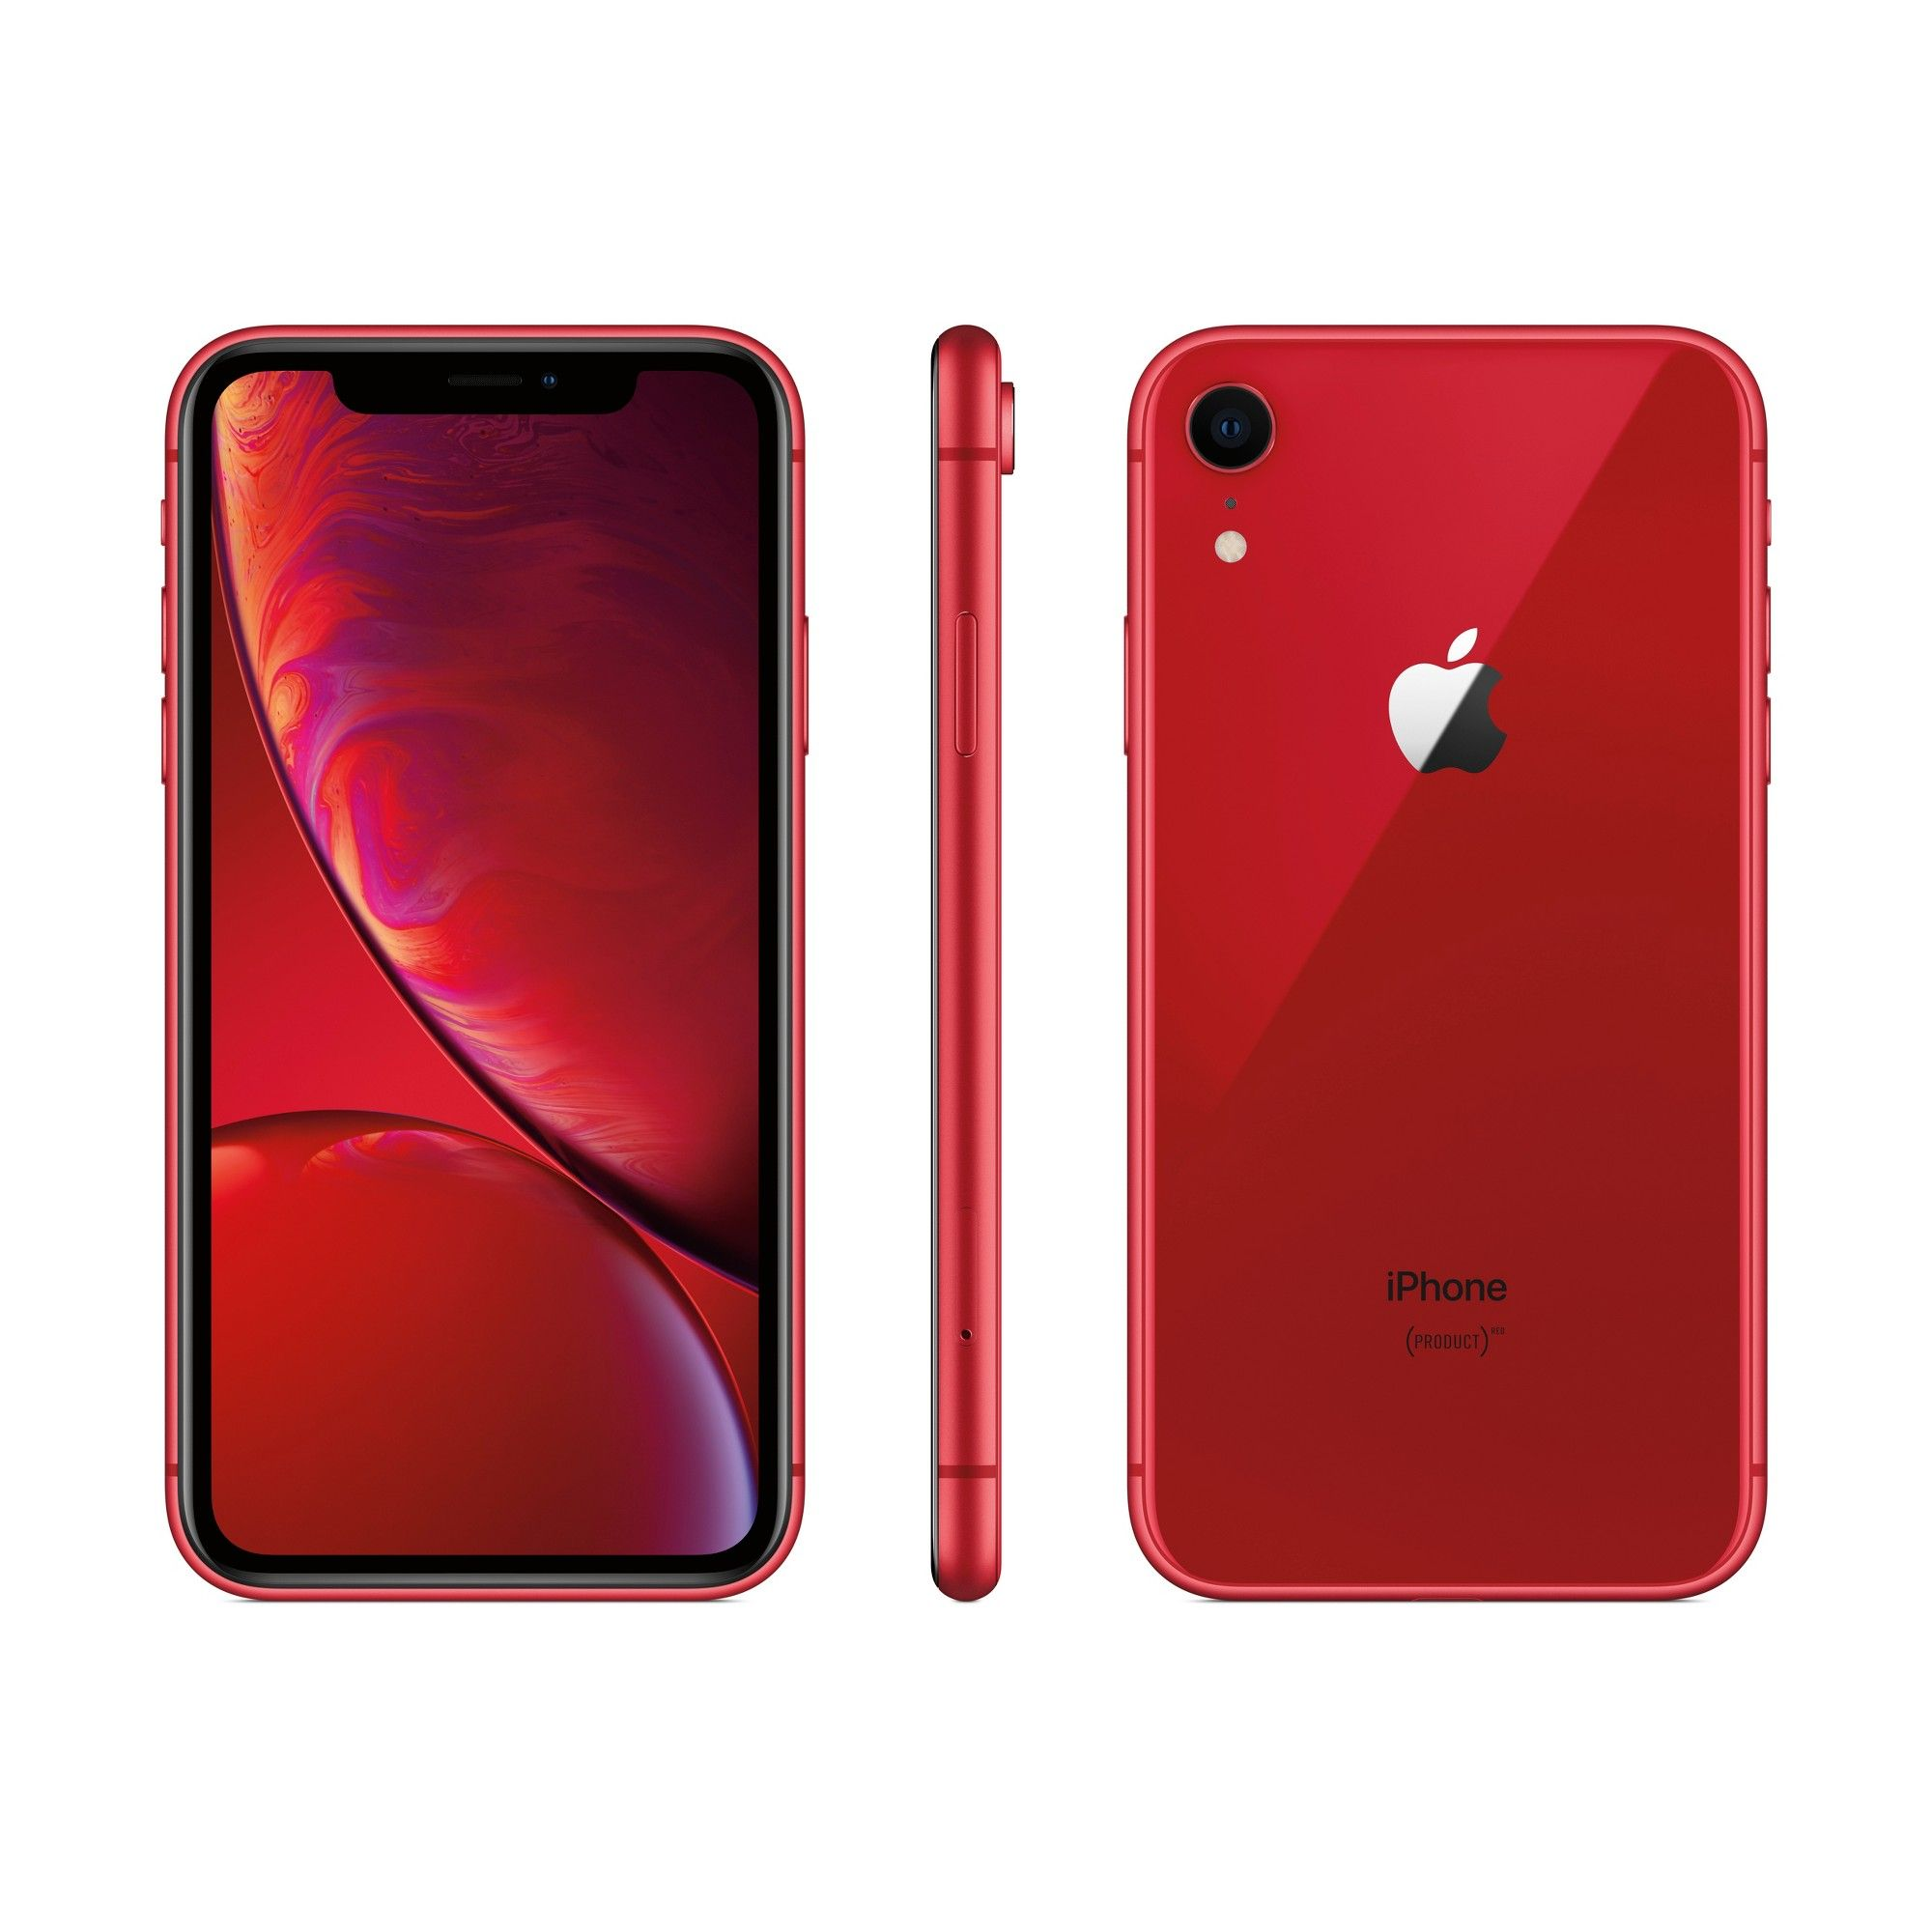 Apple Iphone Xr 64gb Product Red Iphone Apple Iphone Iphone Xr